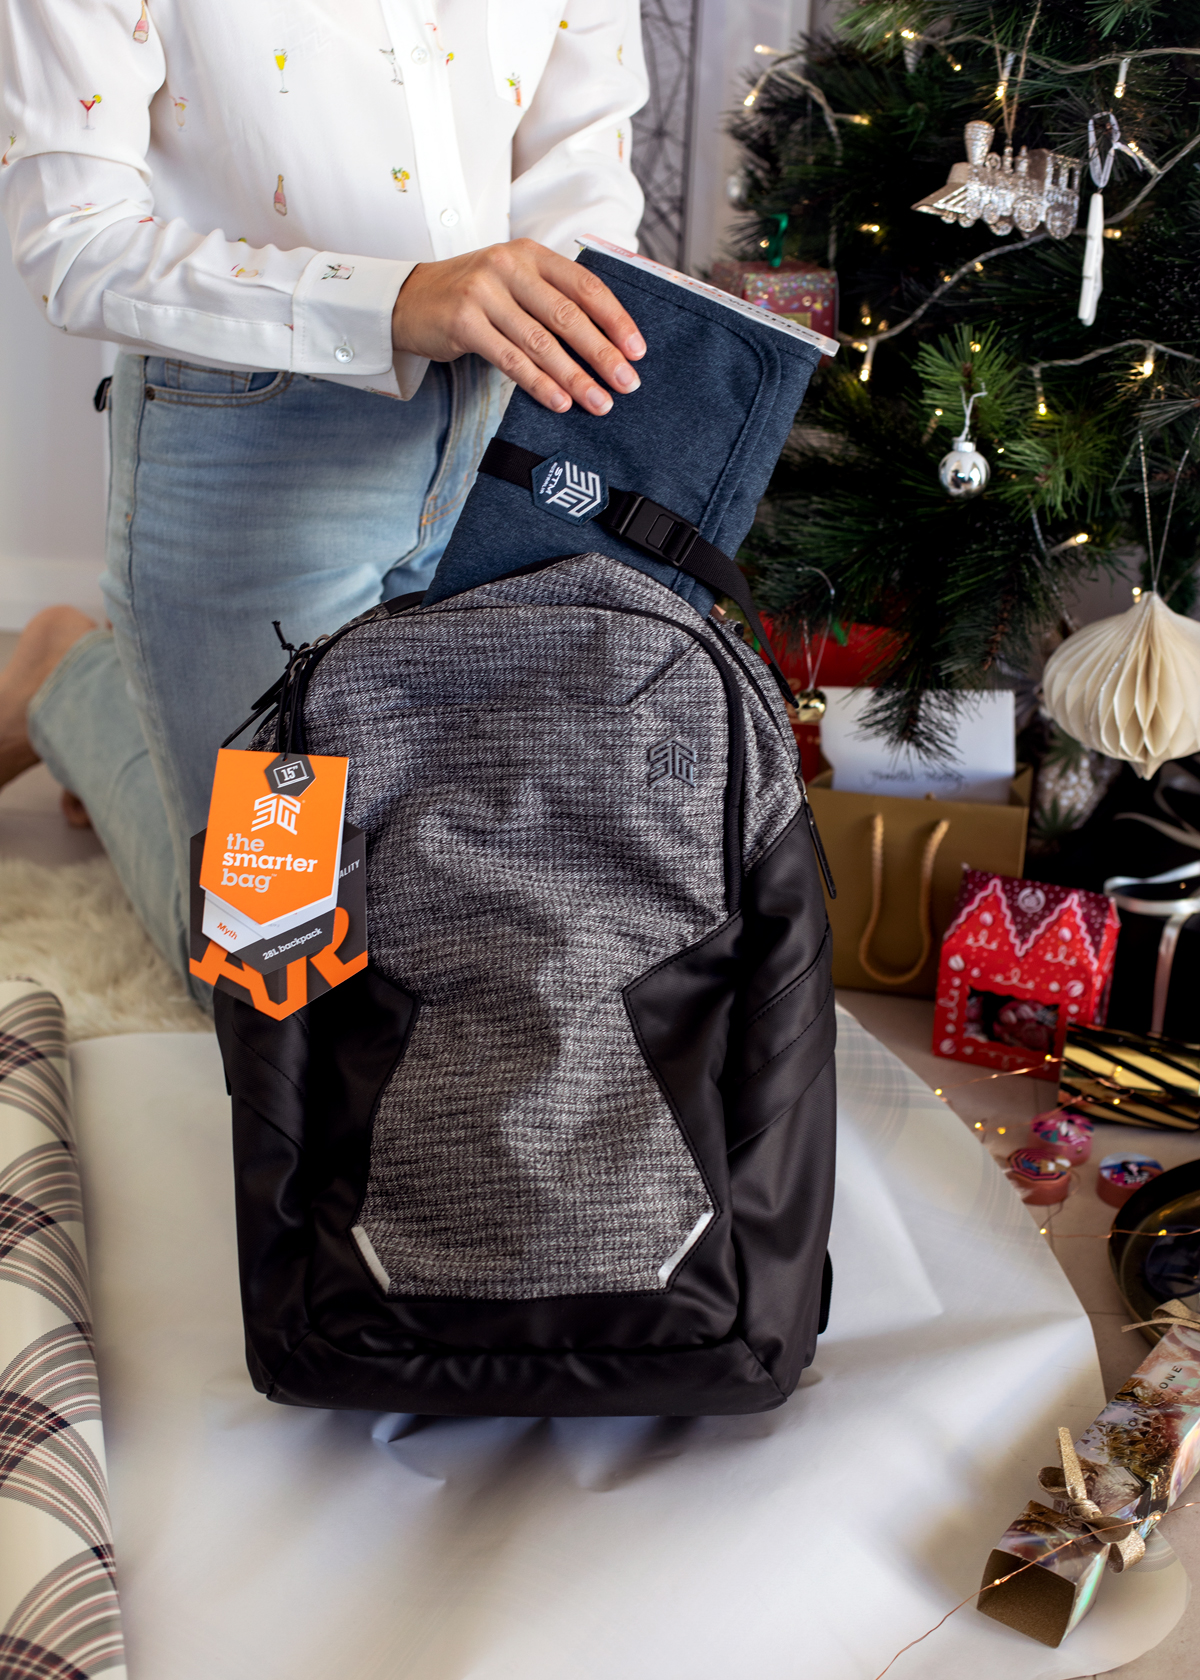 2018 Christmas gift guide Inspiring Wit blog featuring men's gifts STM goods Myth Dapper Wrapper and Myth 28L Laptop backpack